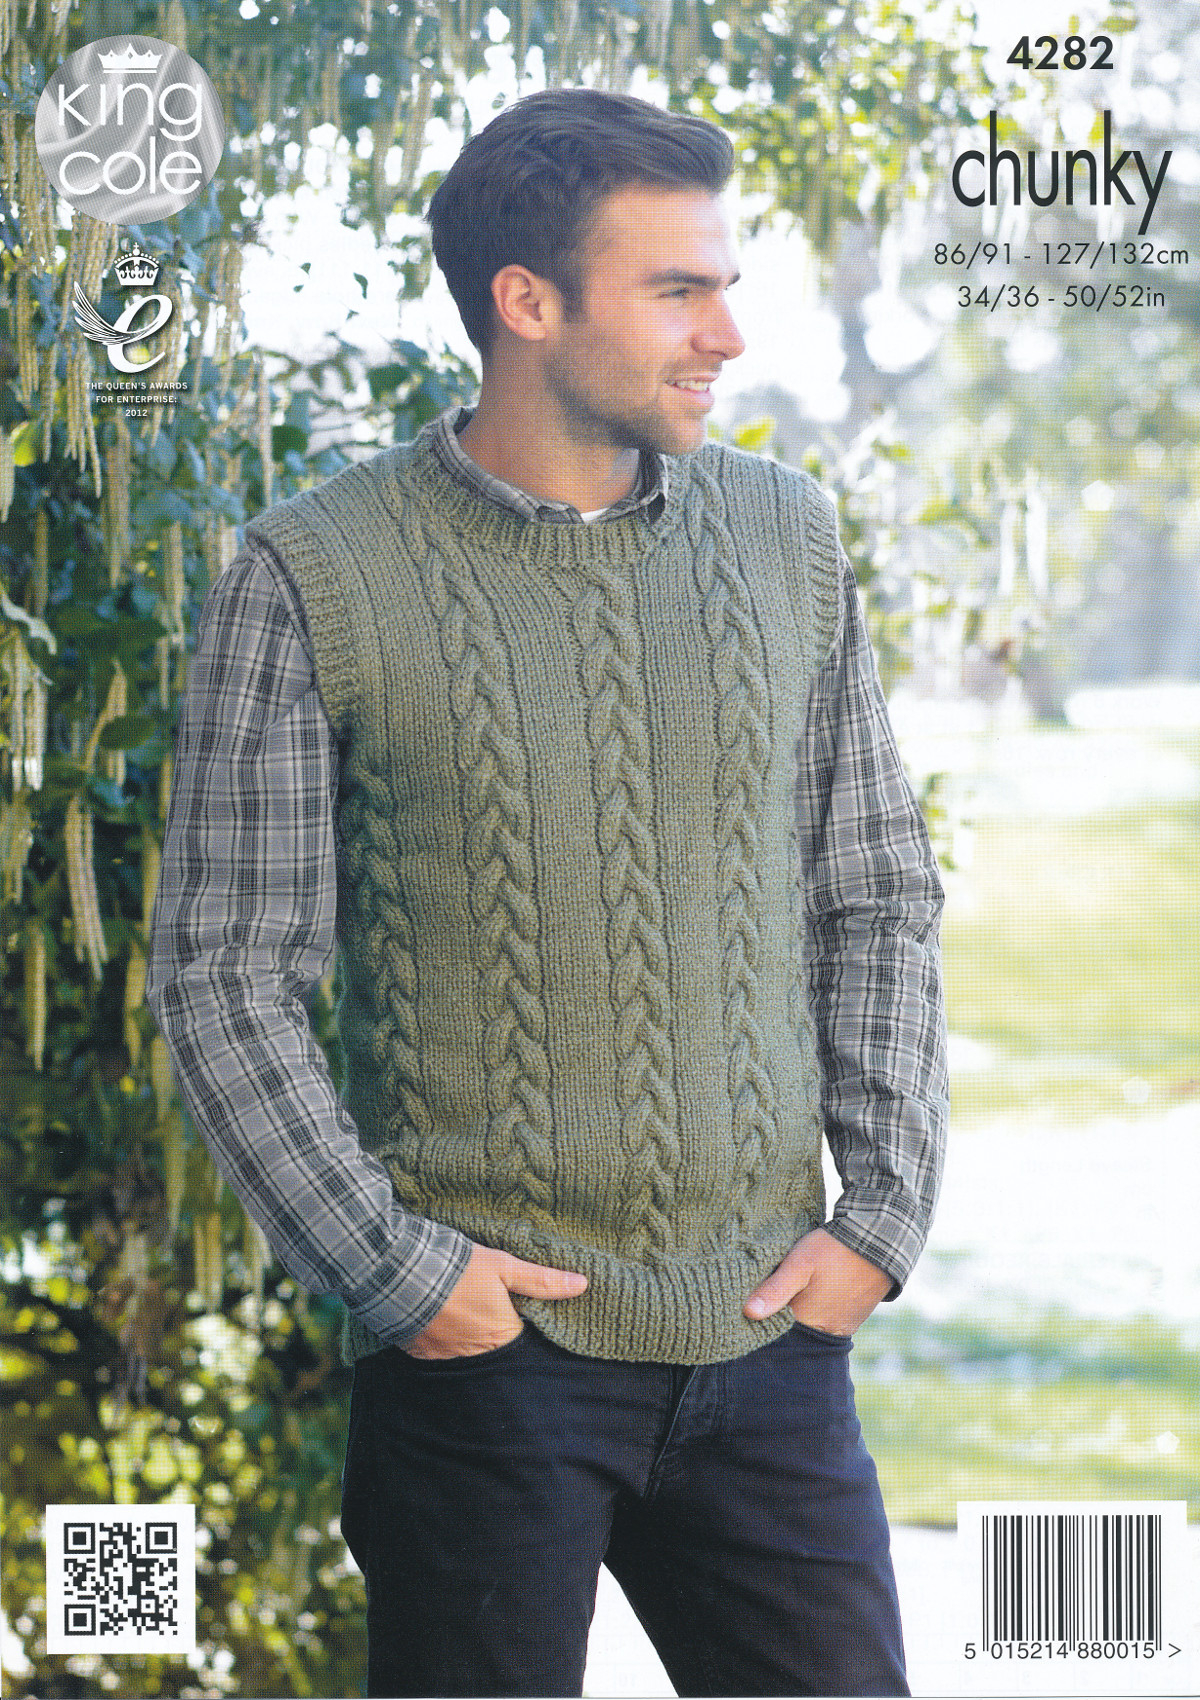 Knit Sweaters Patterns Details About Mens Chunky Knitting Pattern King Cole Cable Knit Sweater Jumper Pullover 4282